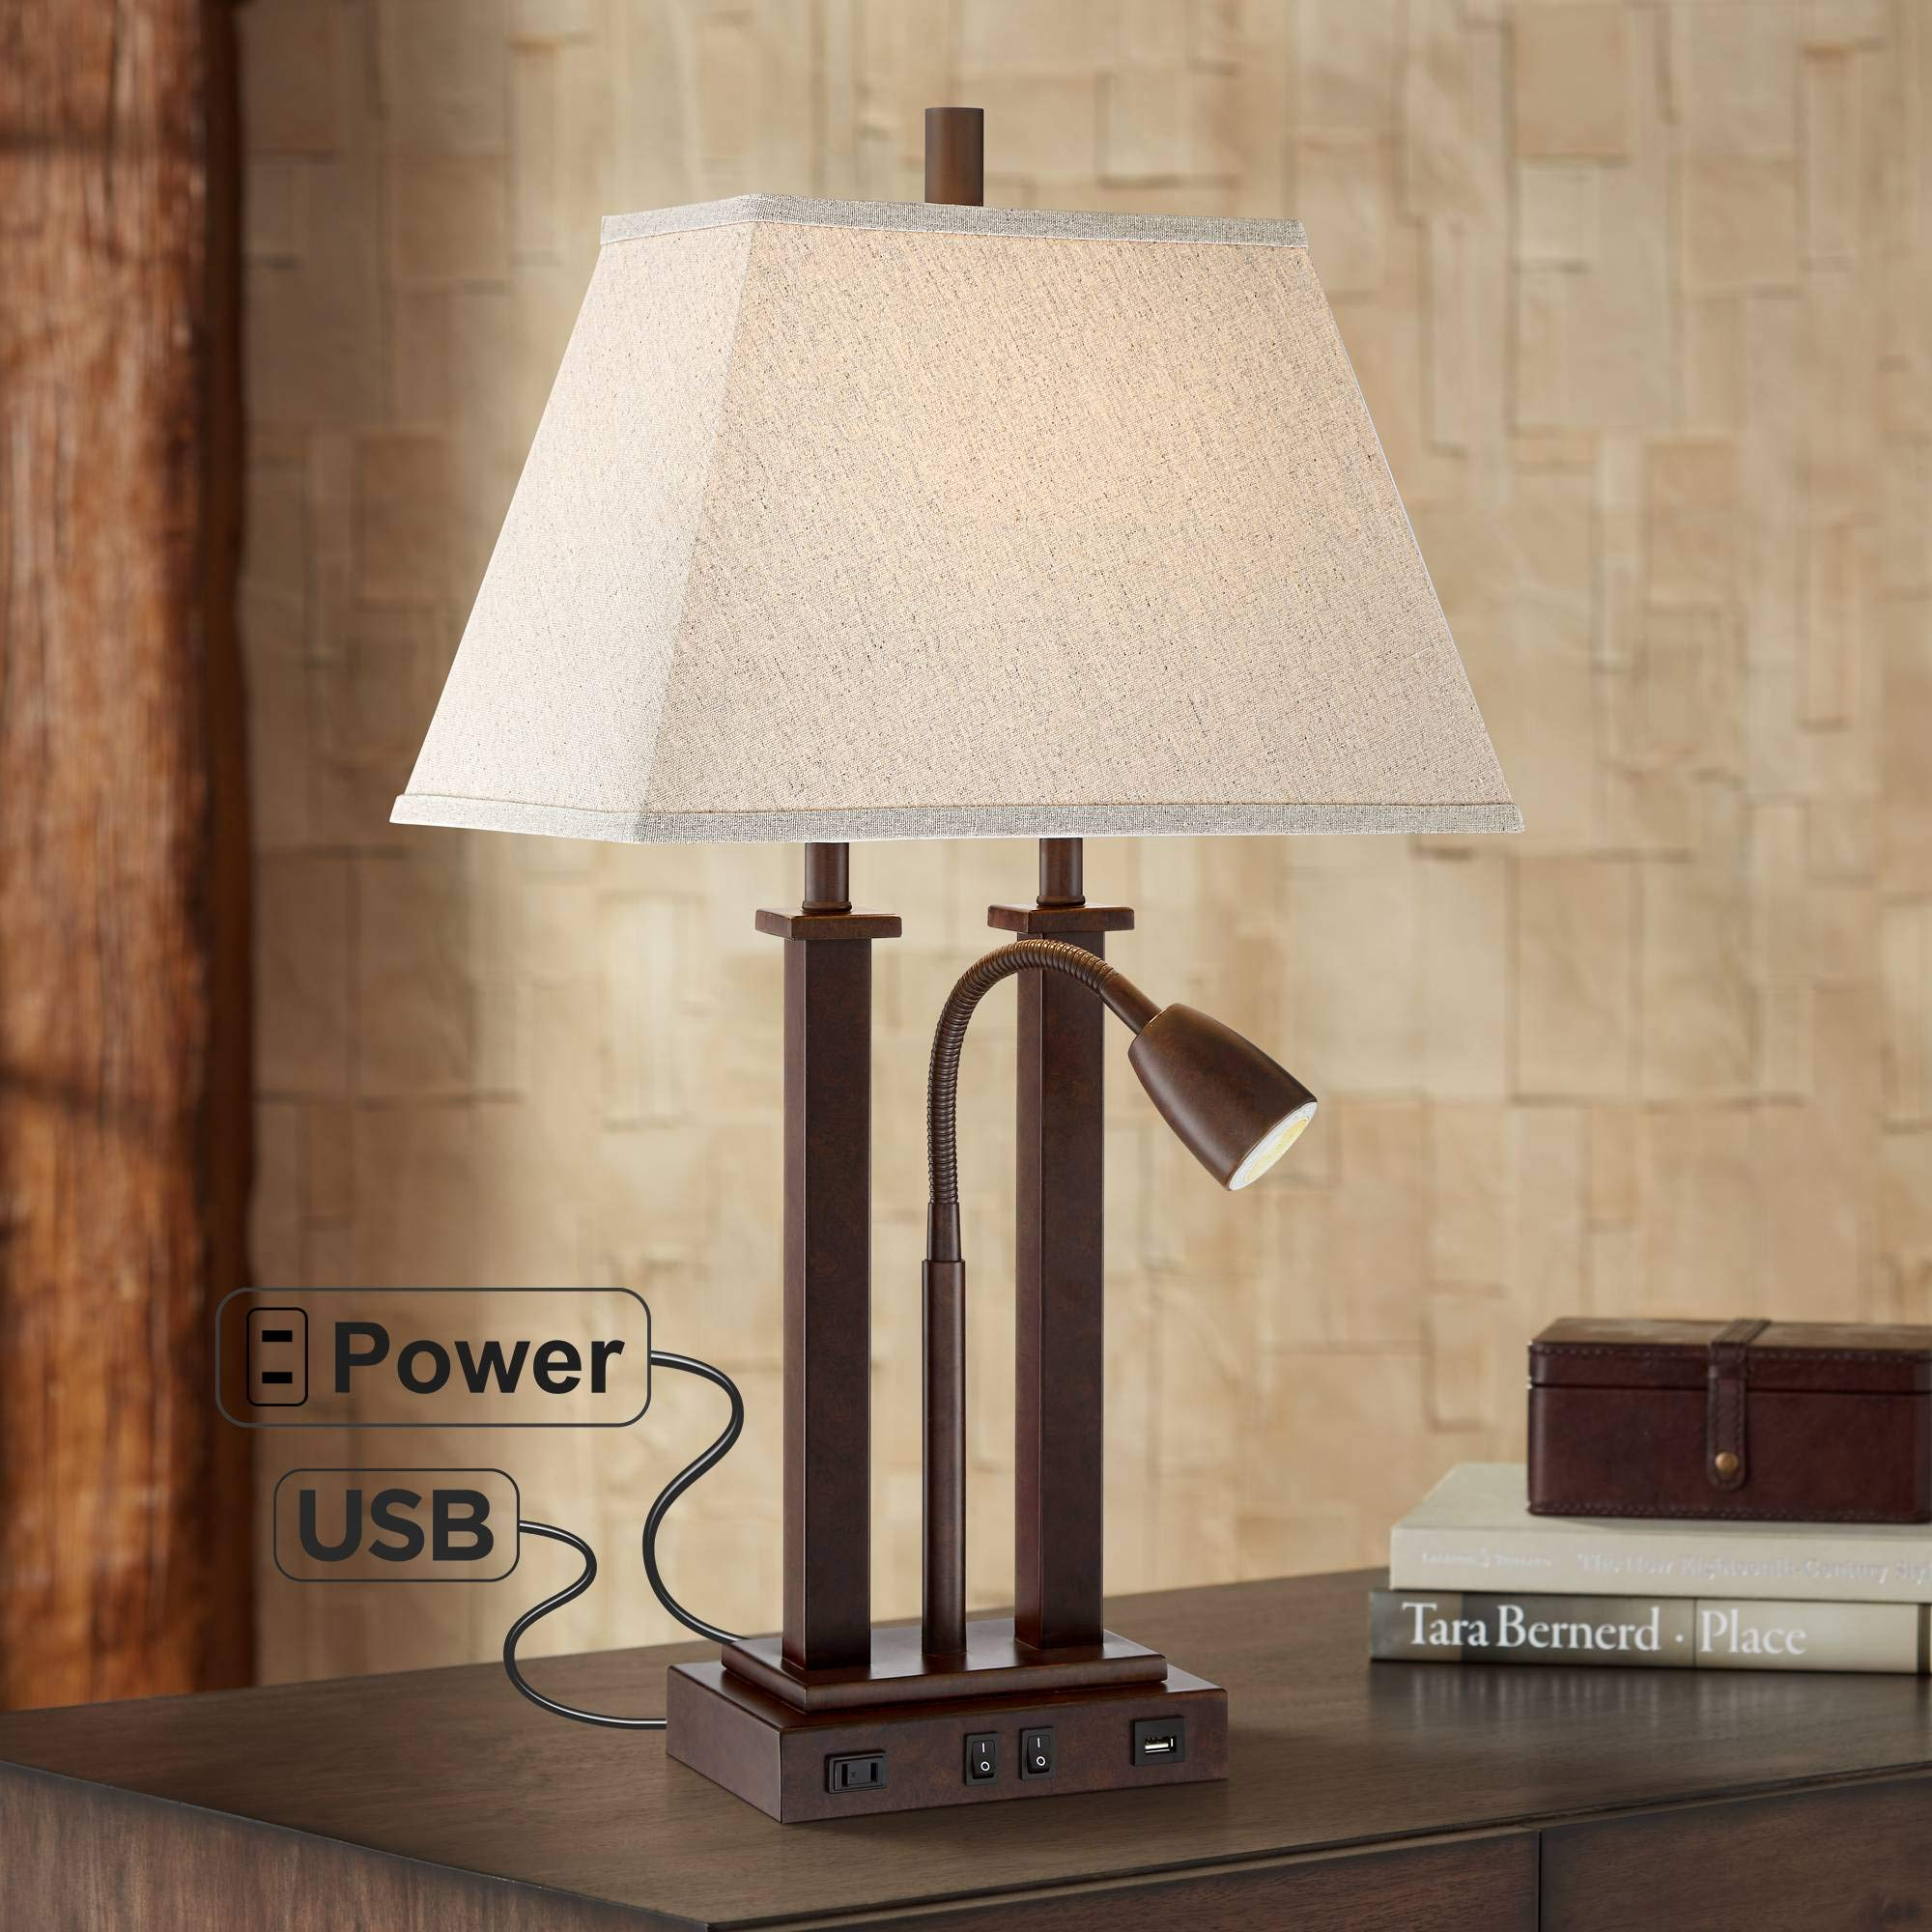 Deacon Bronze Gooseneck Desk Lamp with USB Port and Outlet - Possini Euro Design